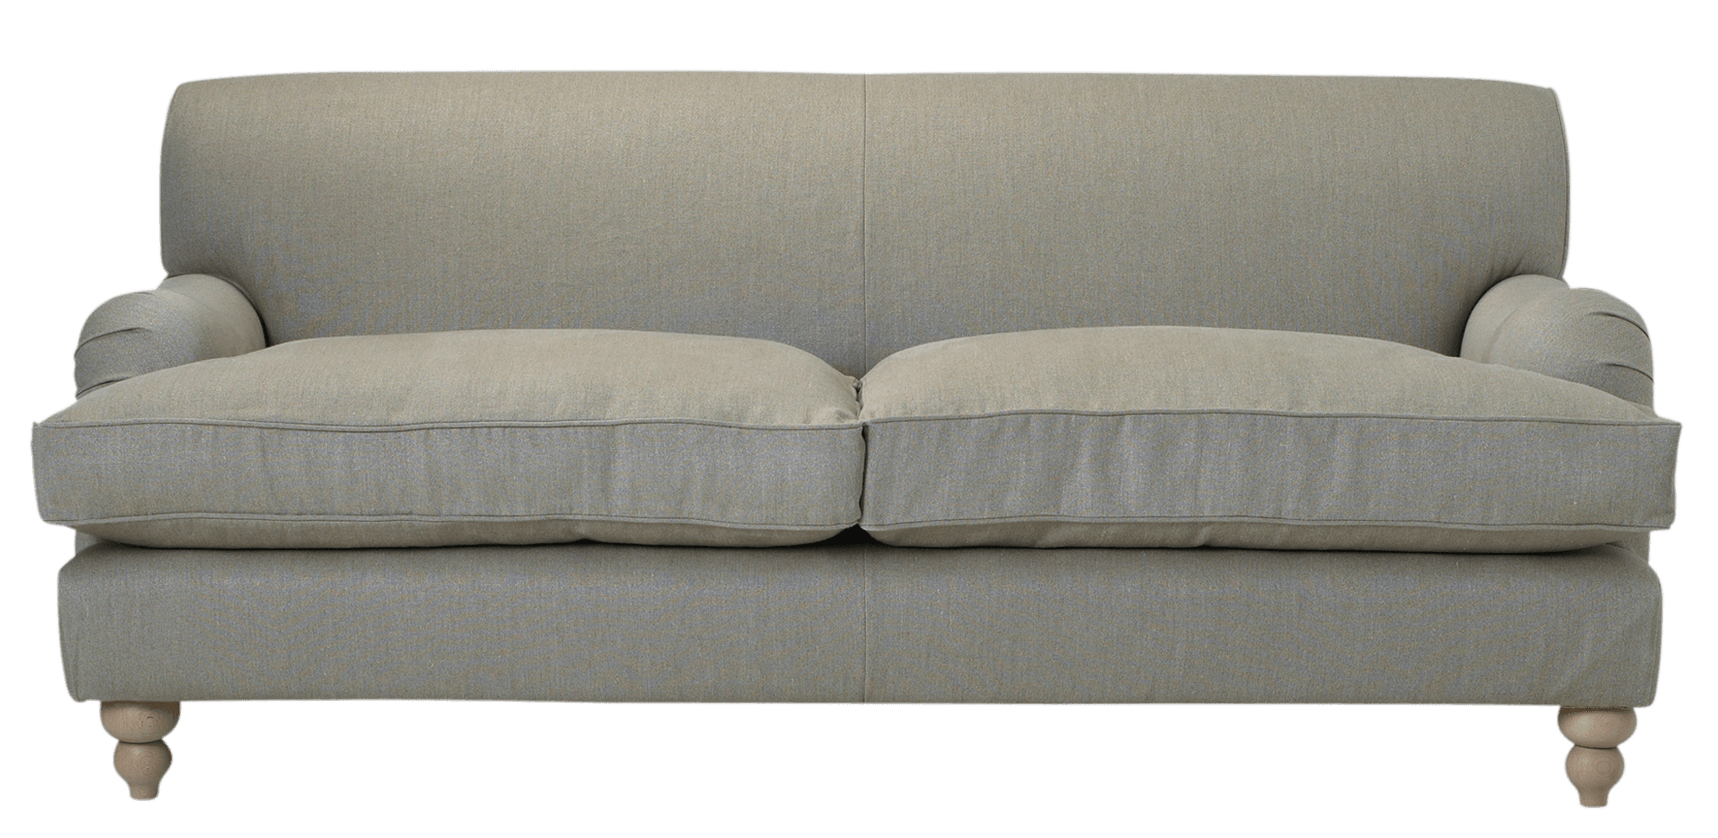 Couch transparent png. Grey fabric sofa stickpng